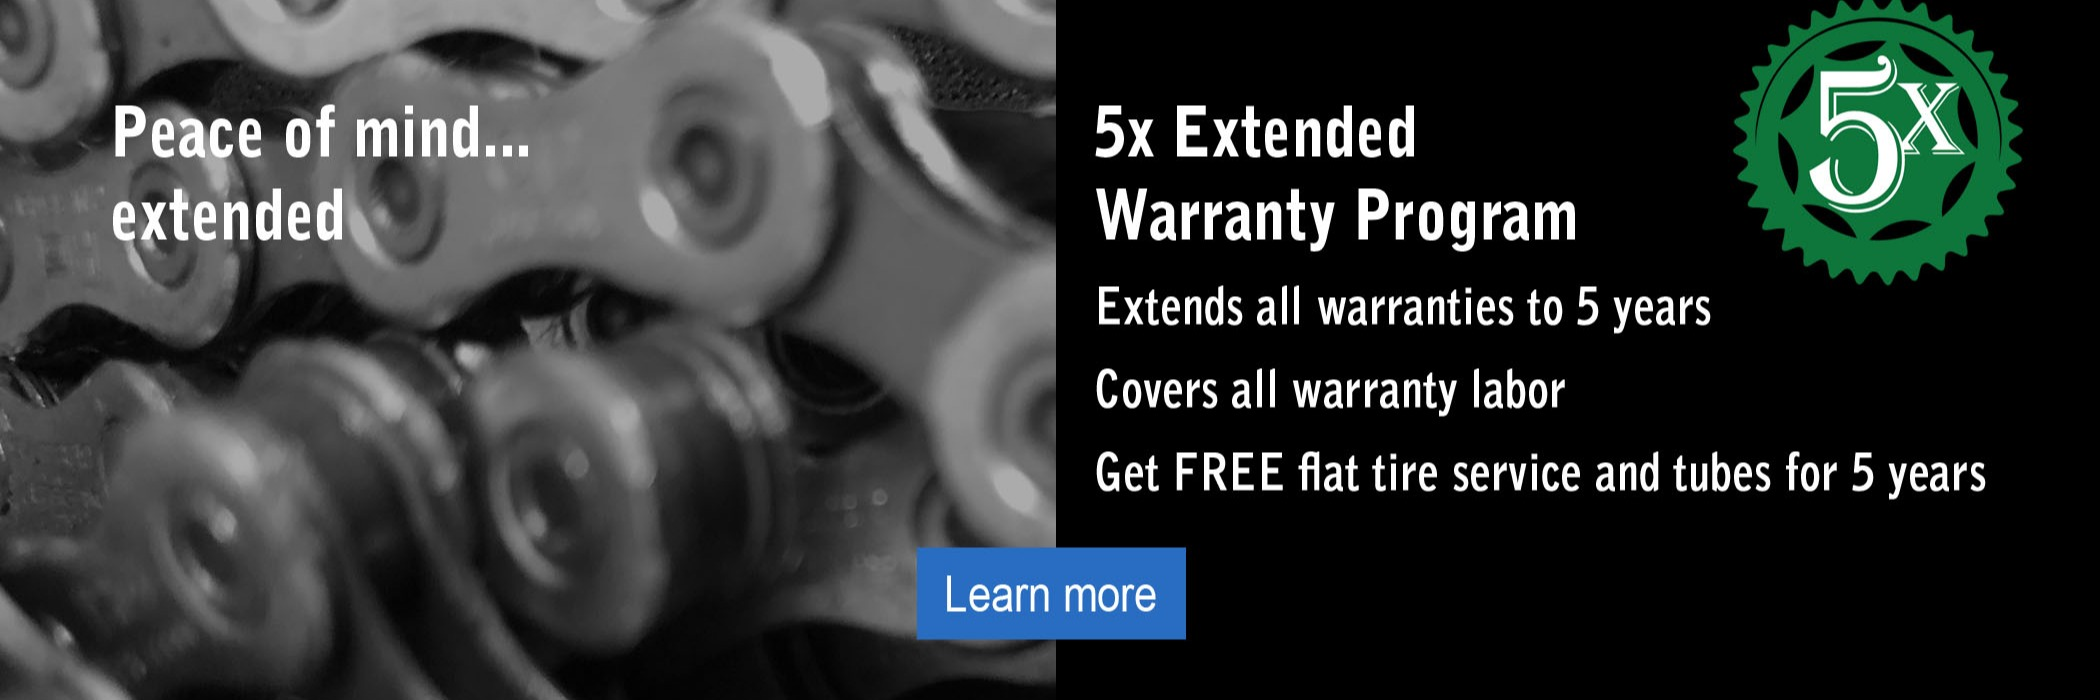 5 times extended warranty